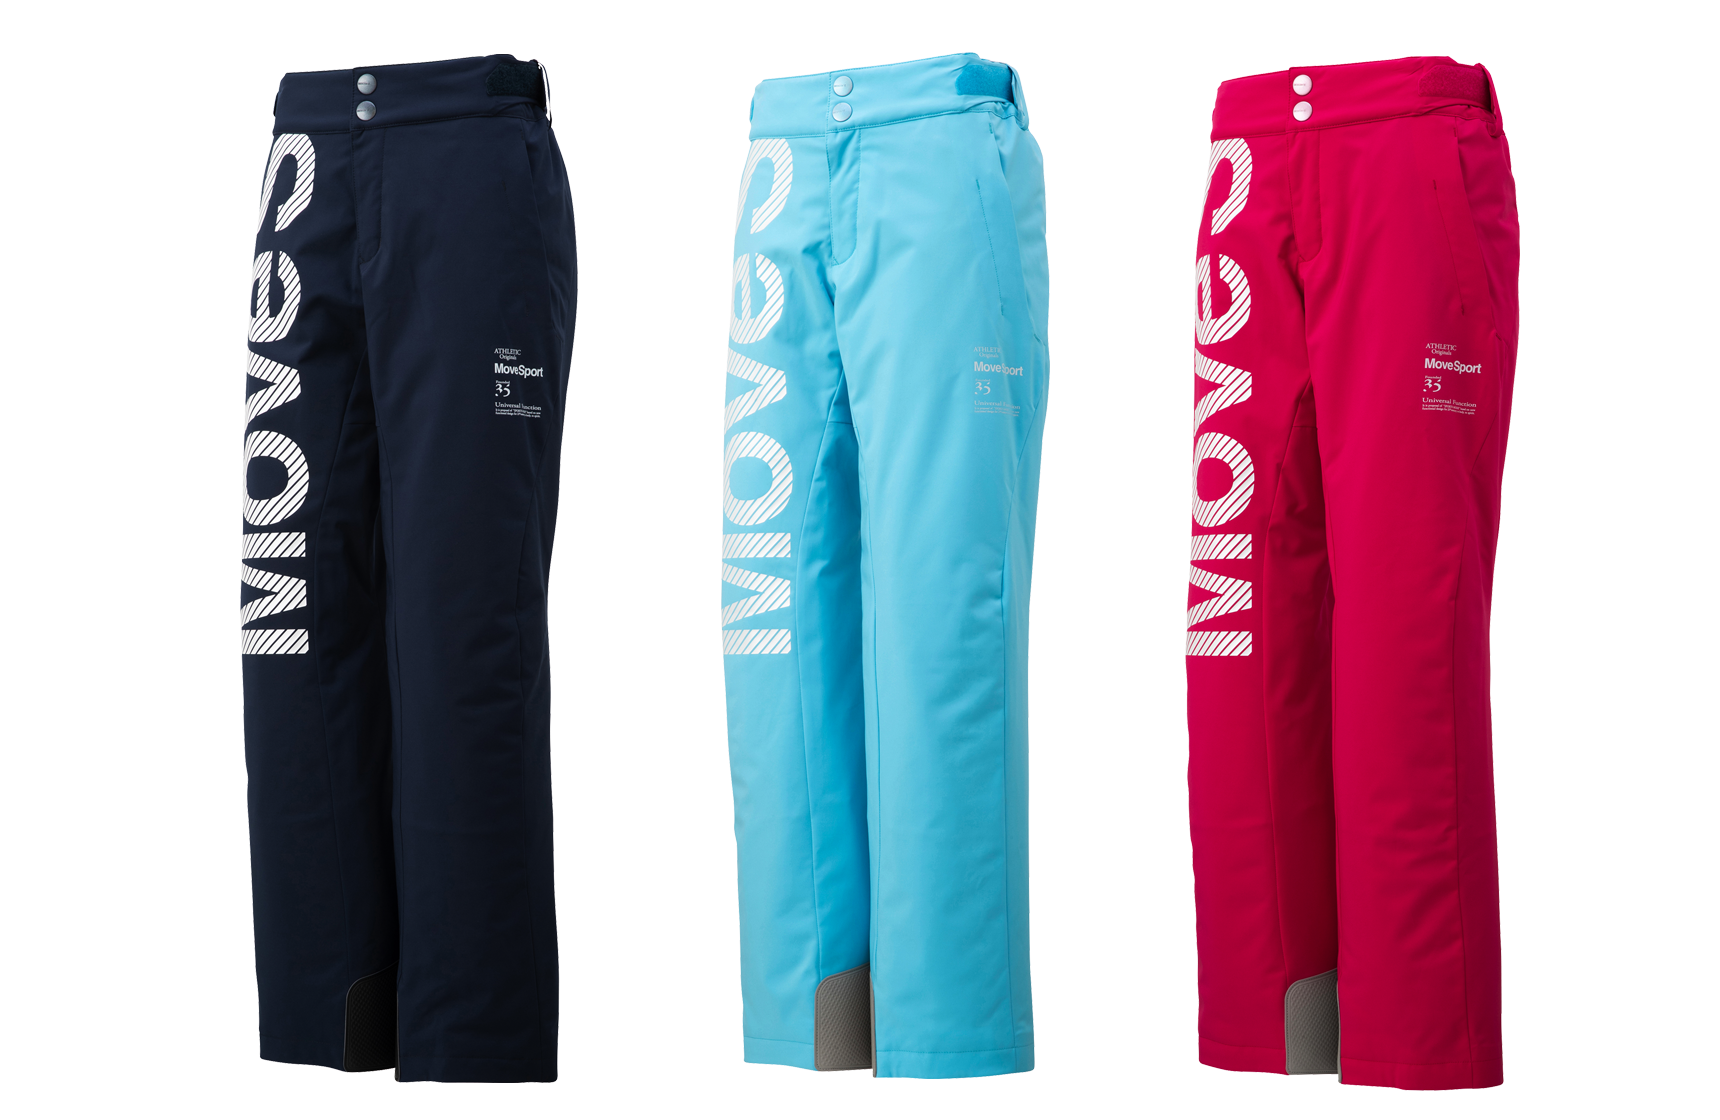 S.I.O INSULATED WOMEN'S PANTS/MOVE SPORT